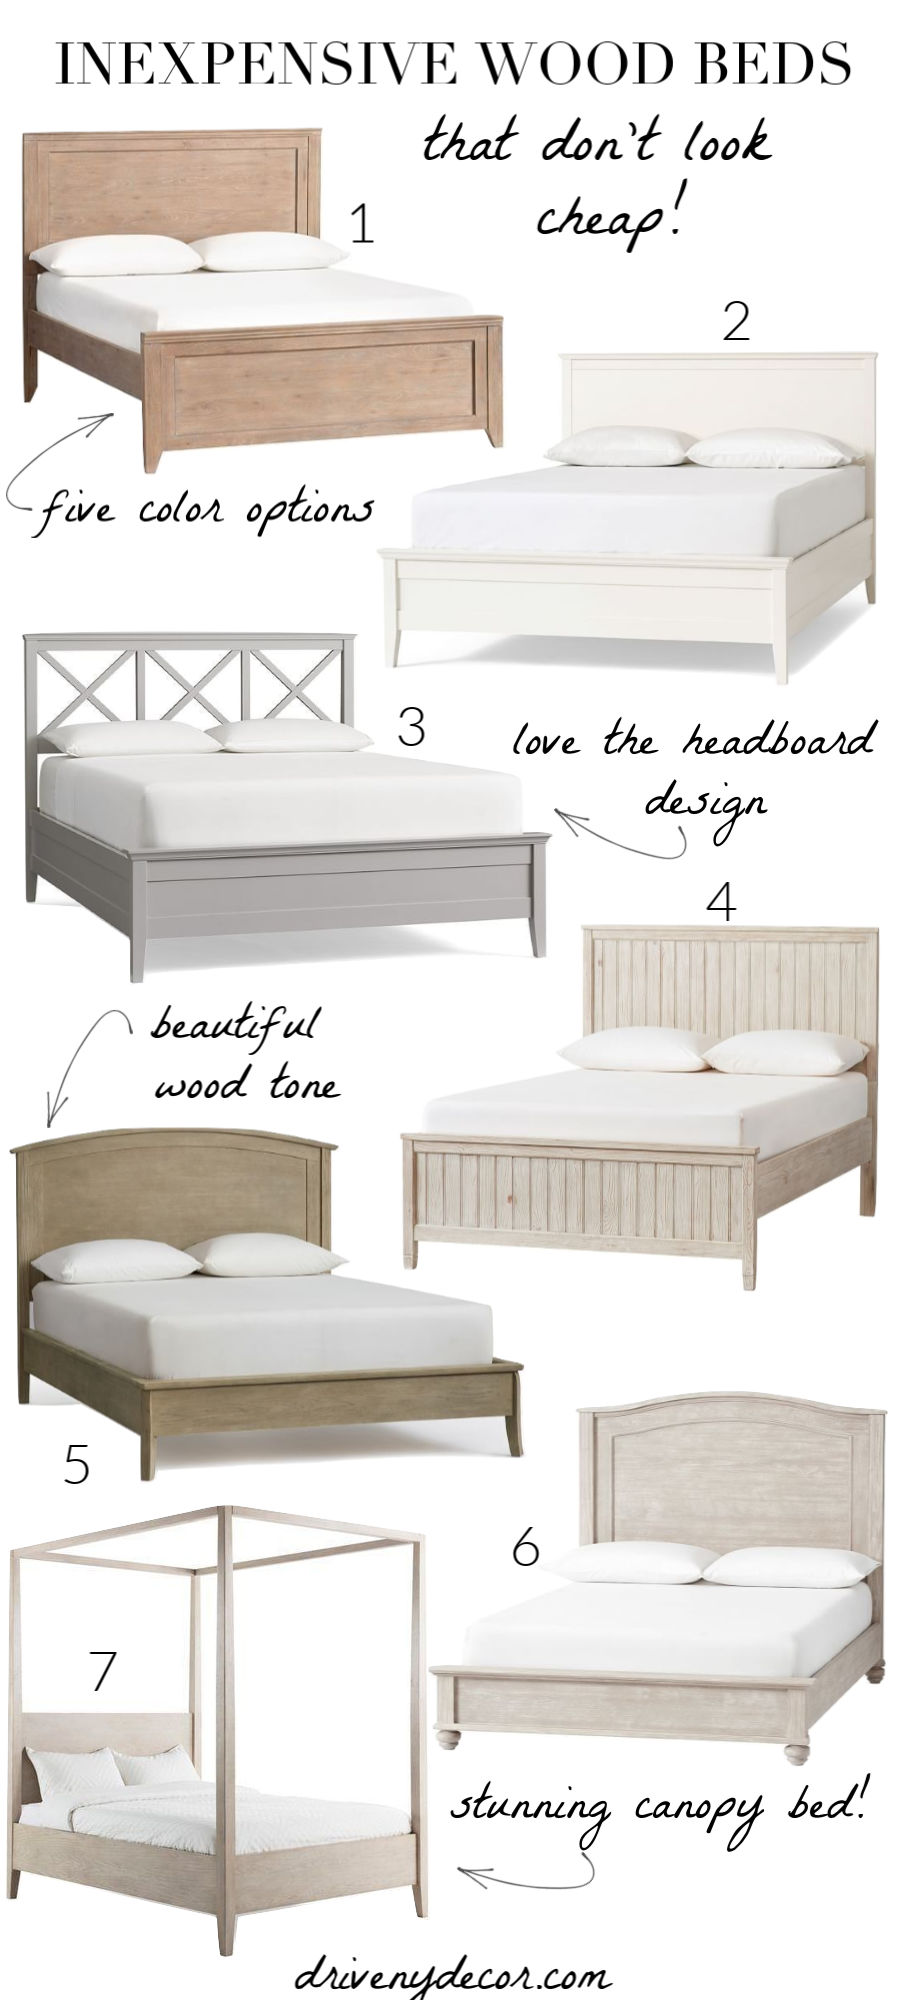 LOVE all of these wood beds that are so much cheaper than you'd expect!